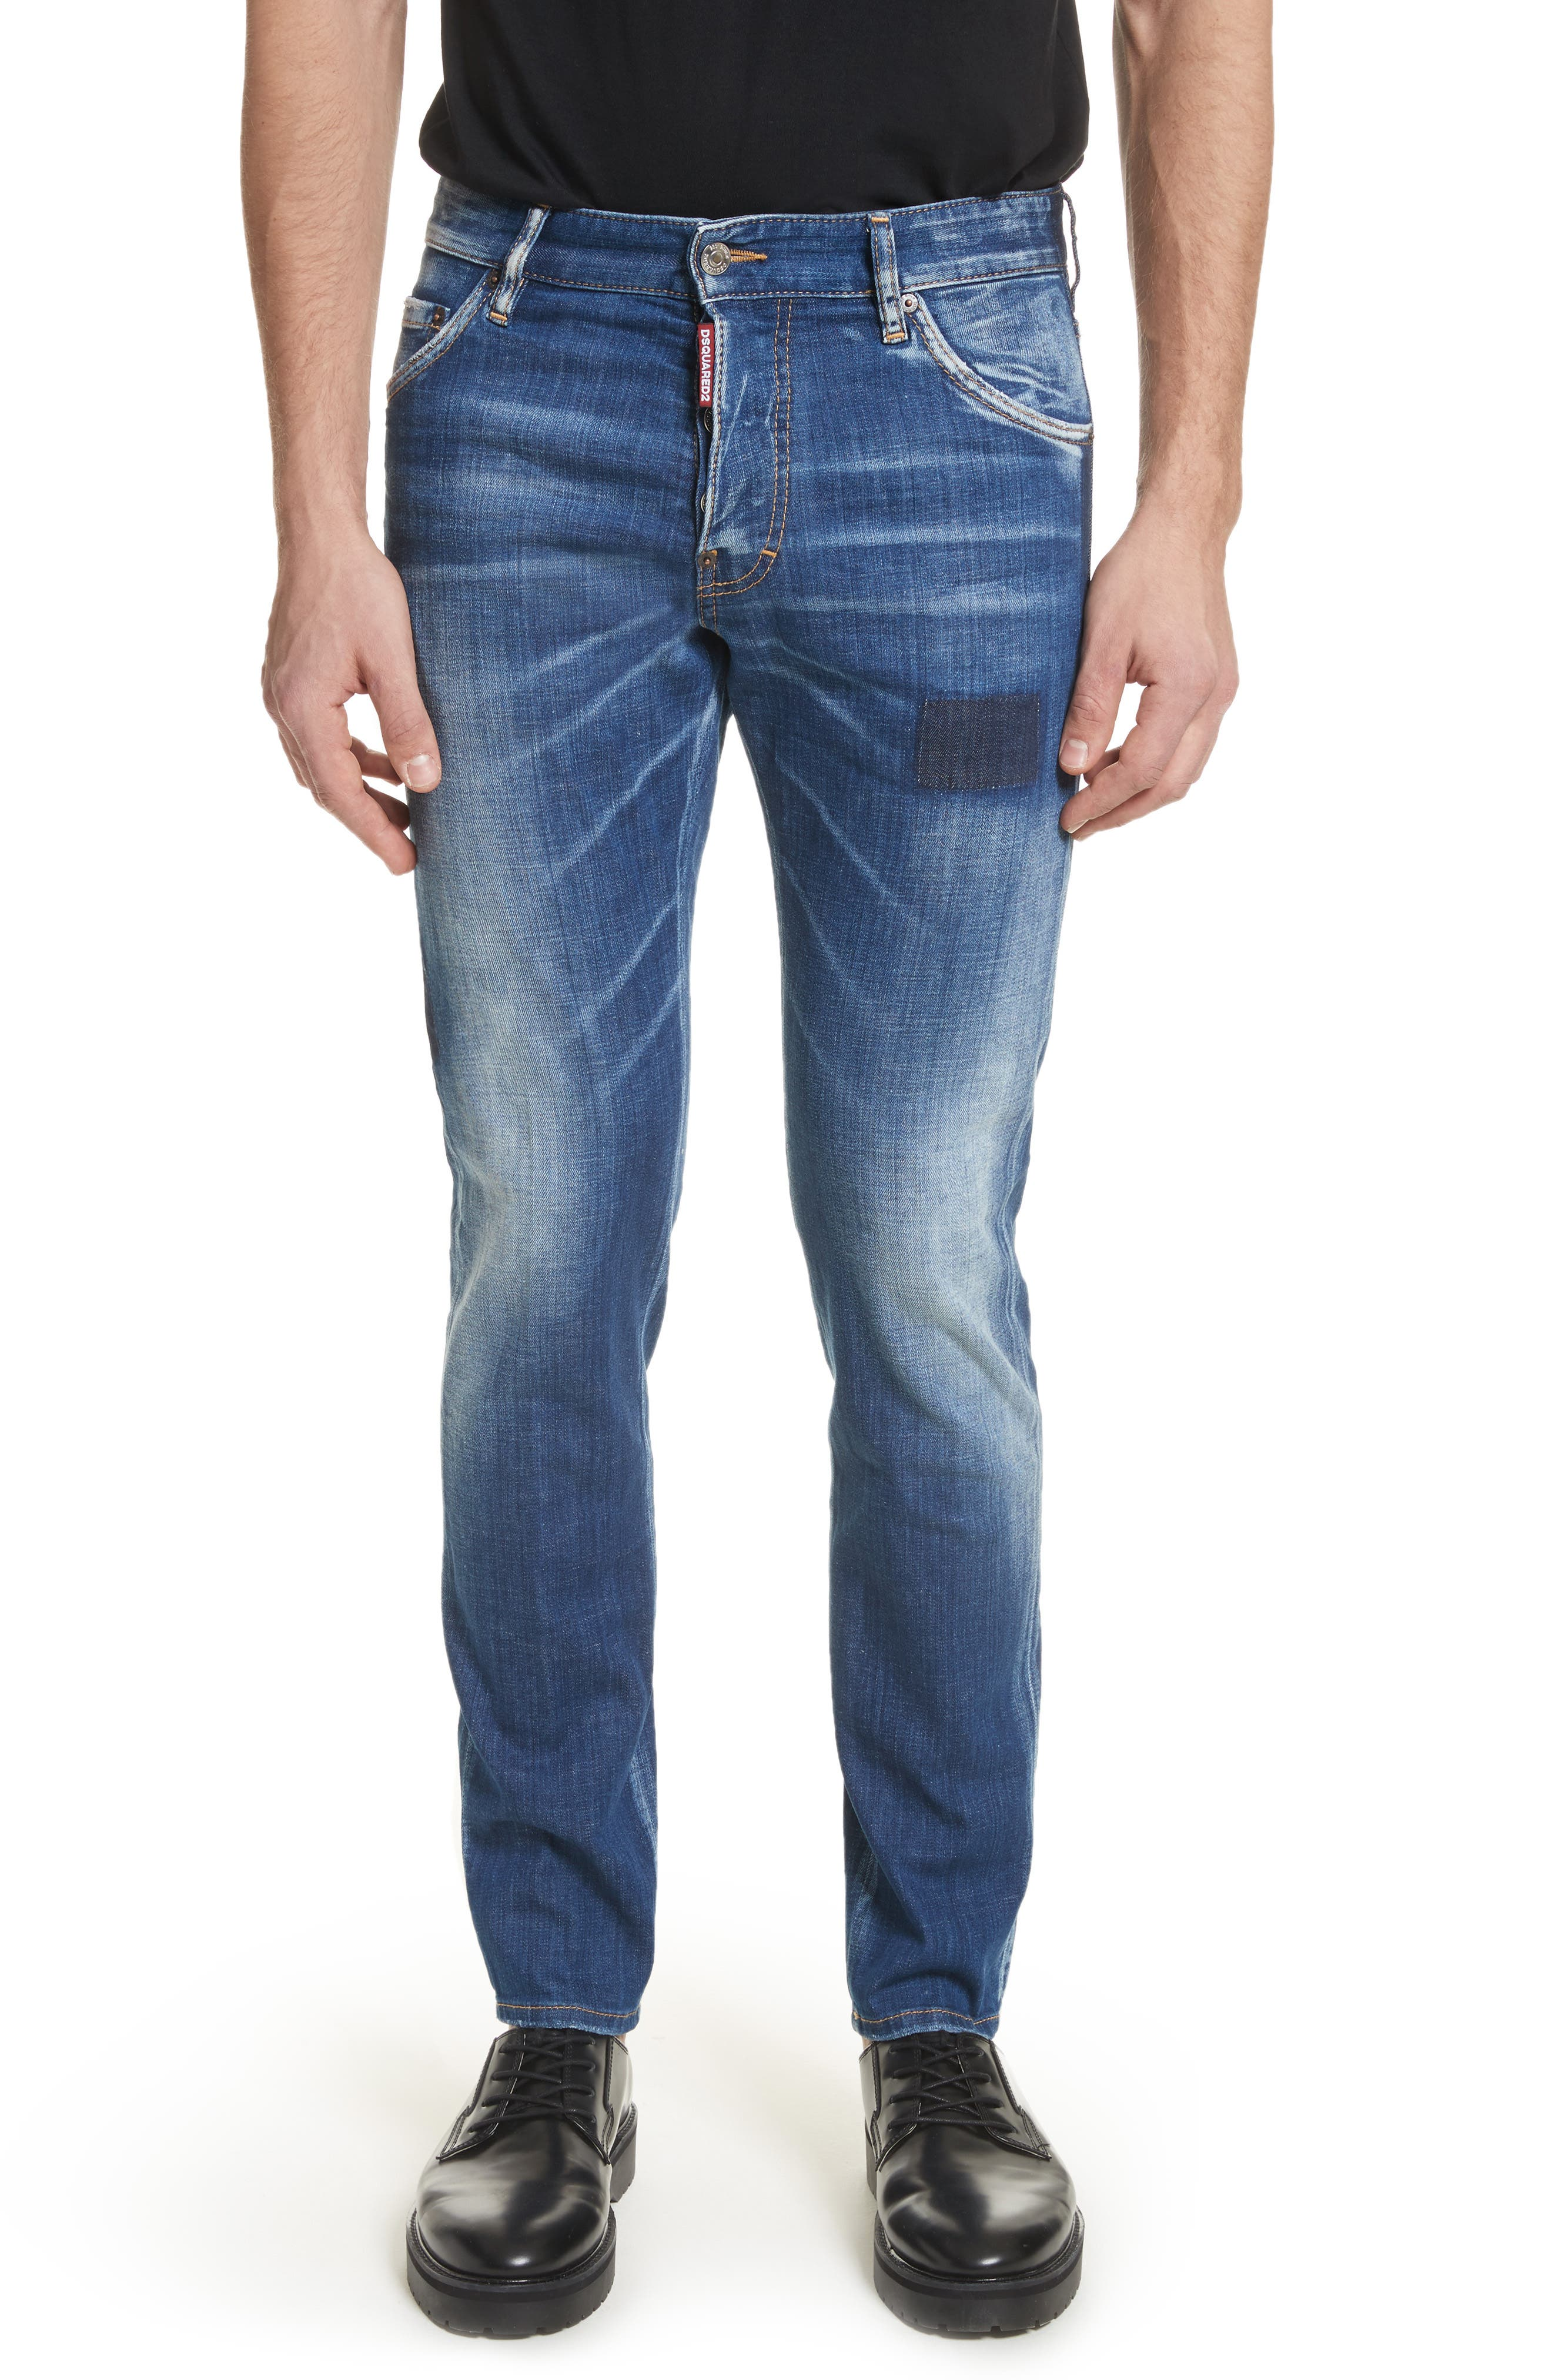 Pulito Cool Guy Jeans,                         Main,                         color, Navy/Blue